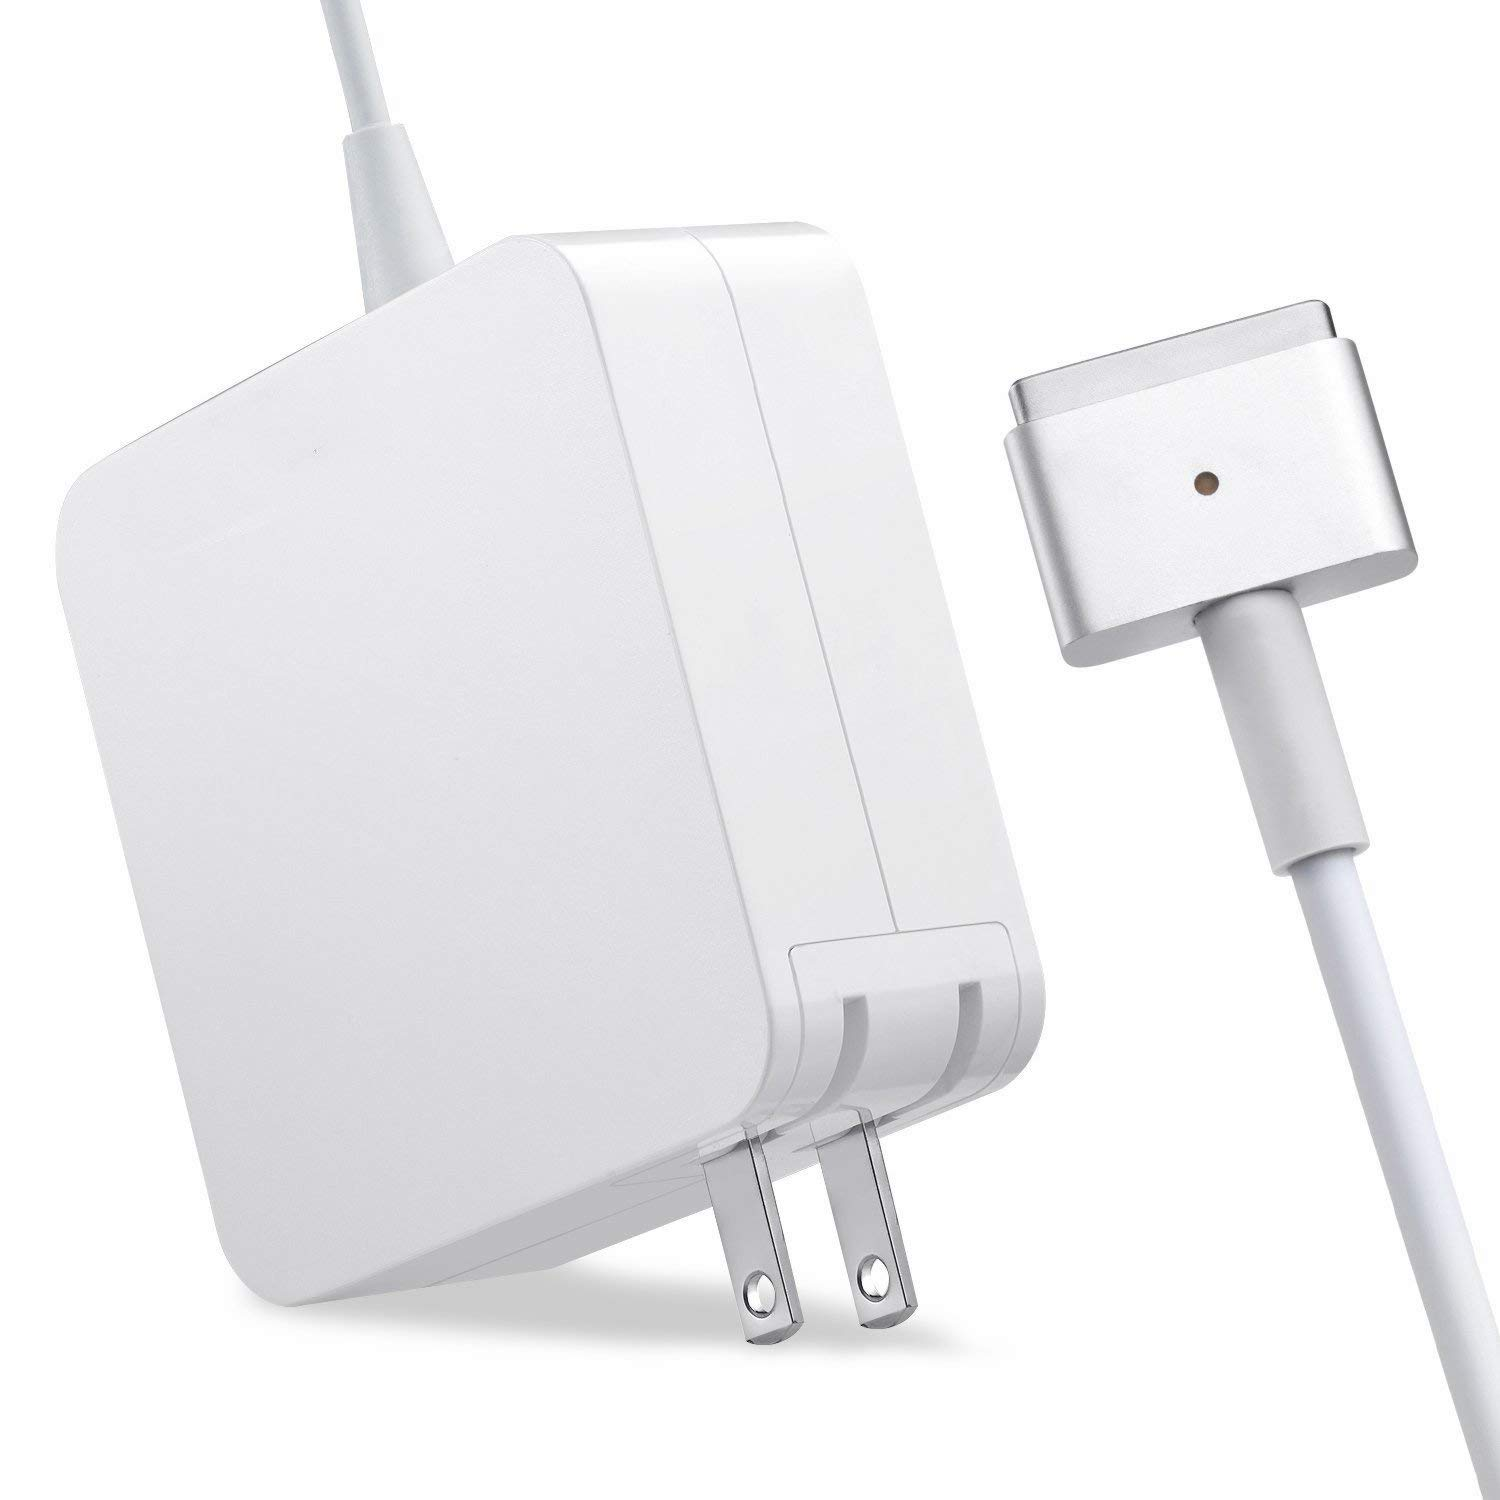 AC 45W Magsafe2 T-Tip Power Adapter Charger for MacBook Air 11/13 inch (MacBook Air Released After Mid 2012)  UK plug